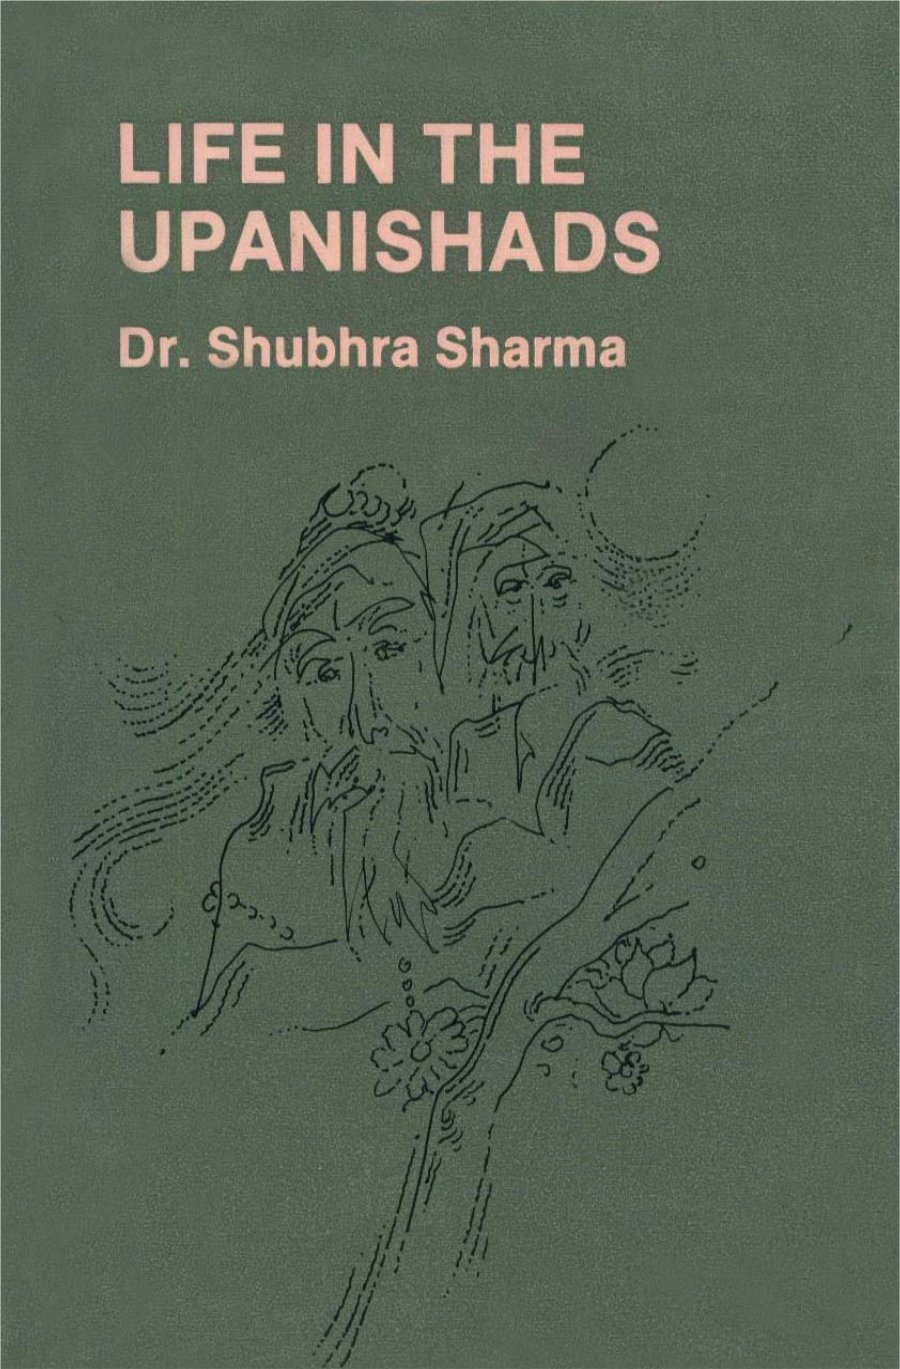 Life in the Upanishads